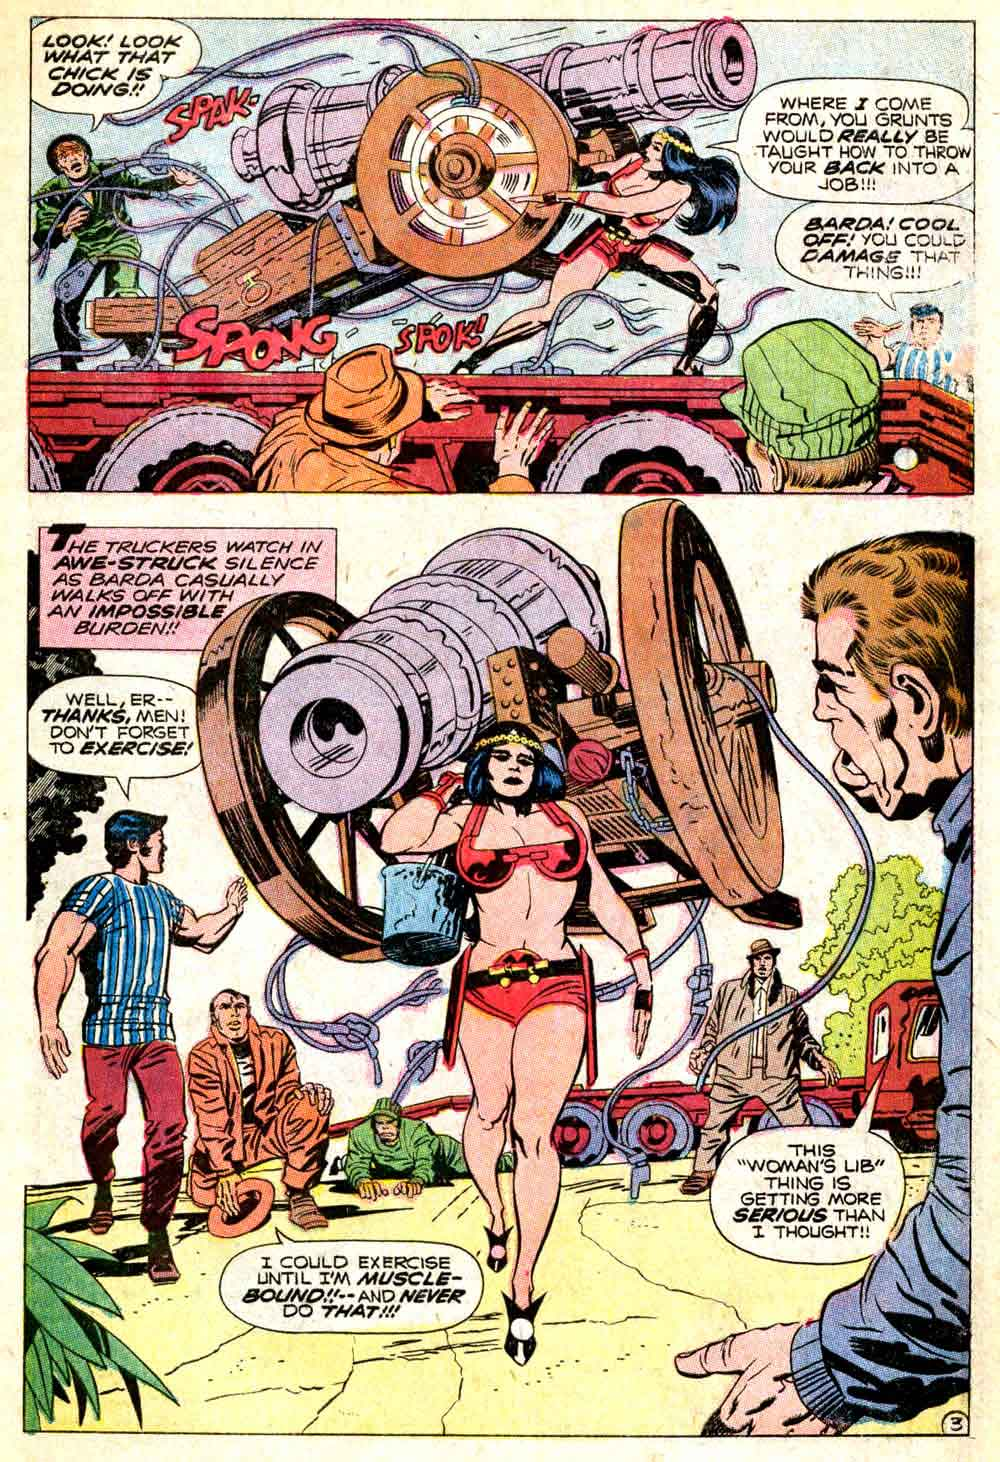 Mister Miracle v1 #5 dc 1970s bronze age comic book page art by Jack Kirby